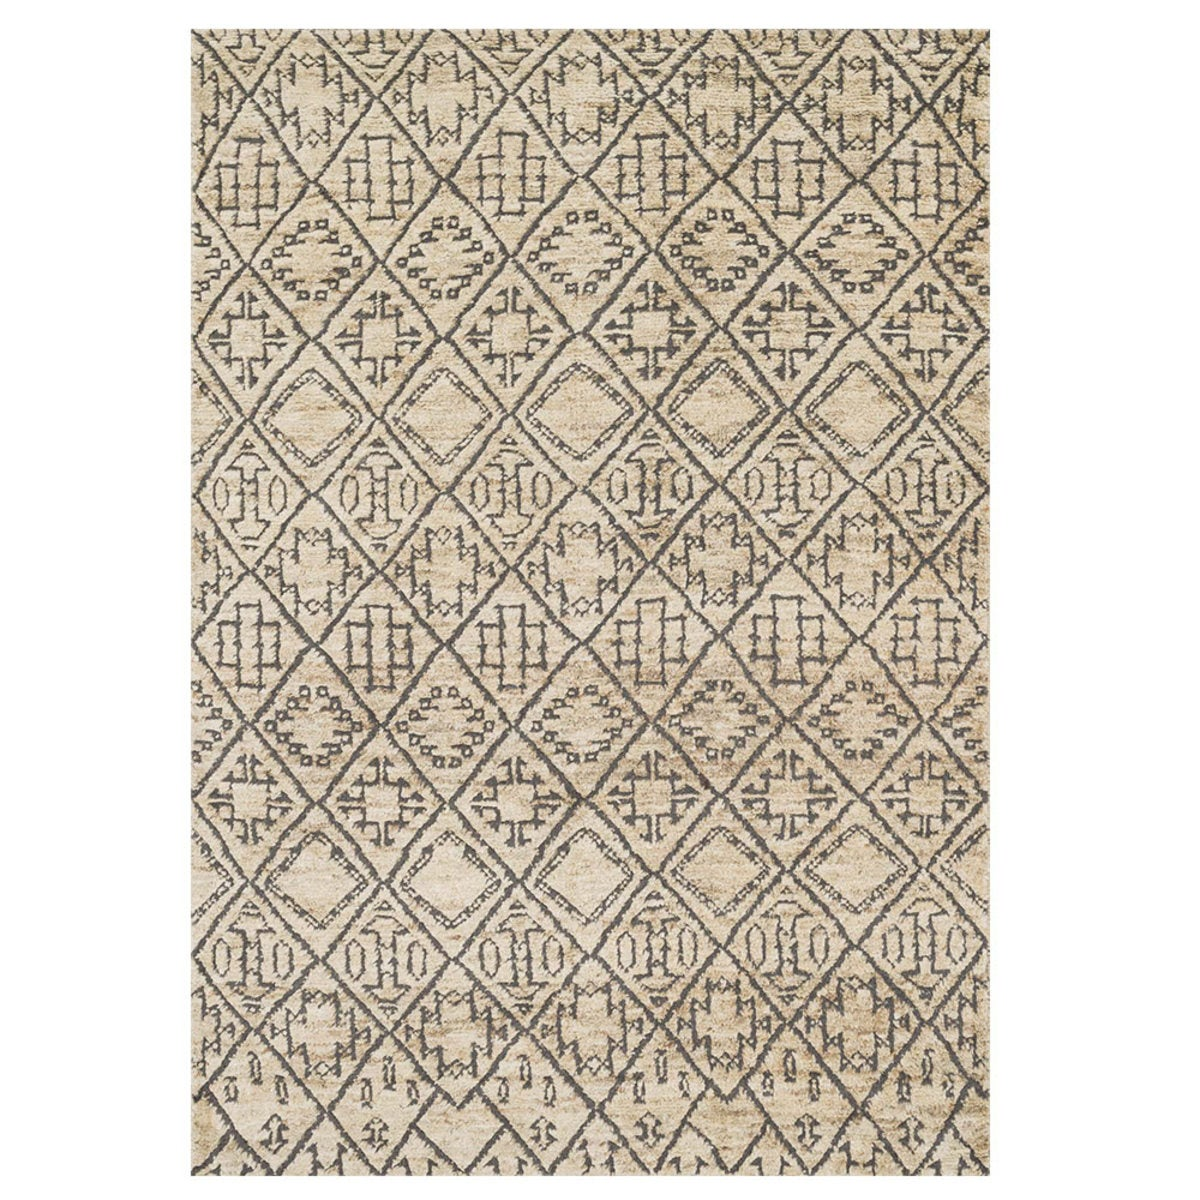 "Loloi Sahara Drawn to Scale Rug in Birch - 7'9"" x 9'9"" - Sand"